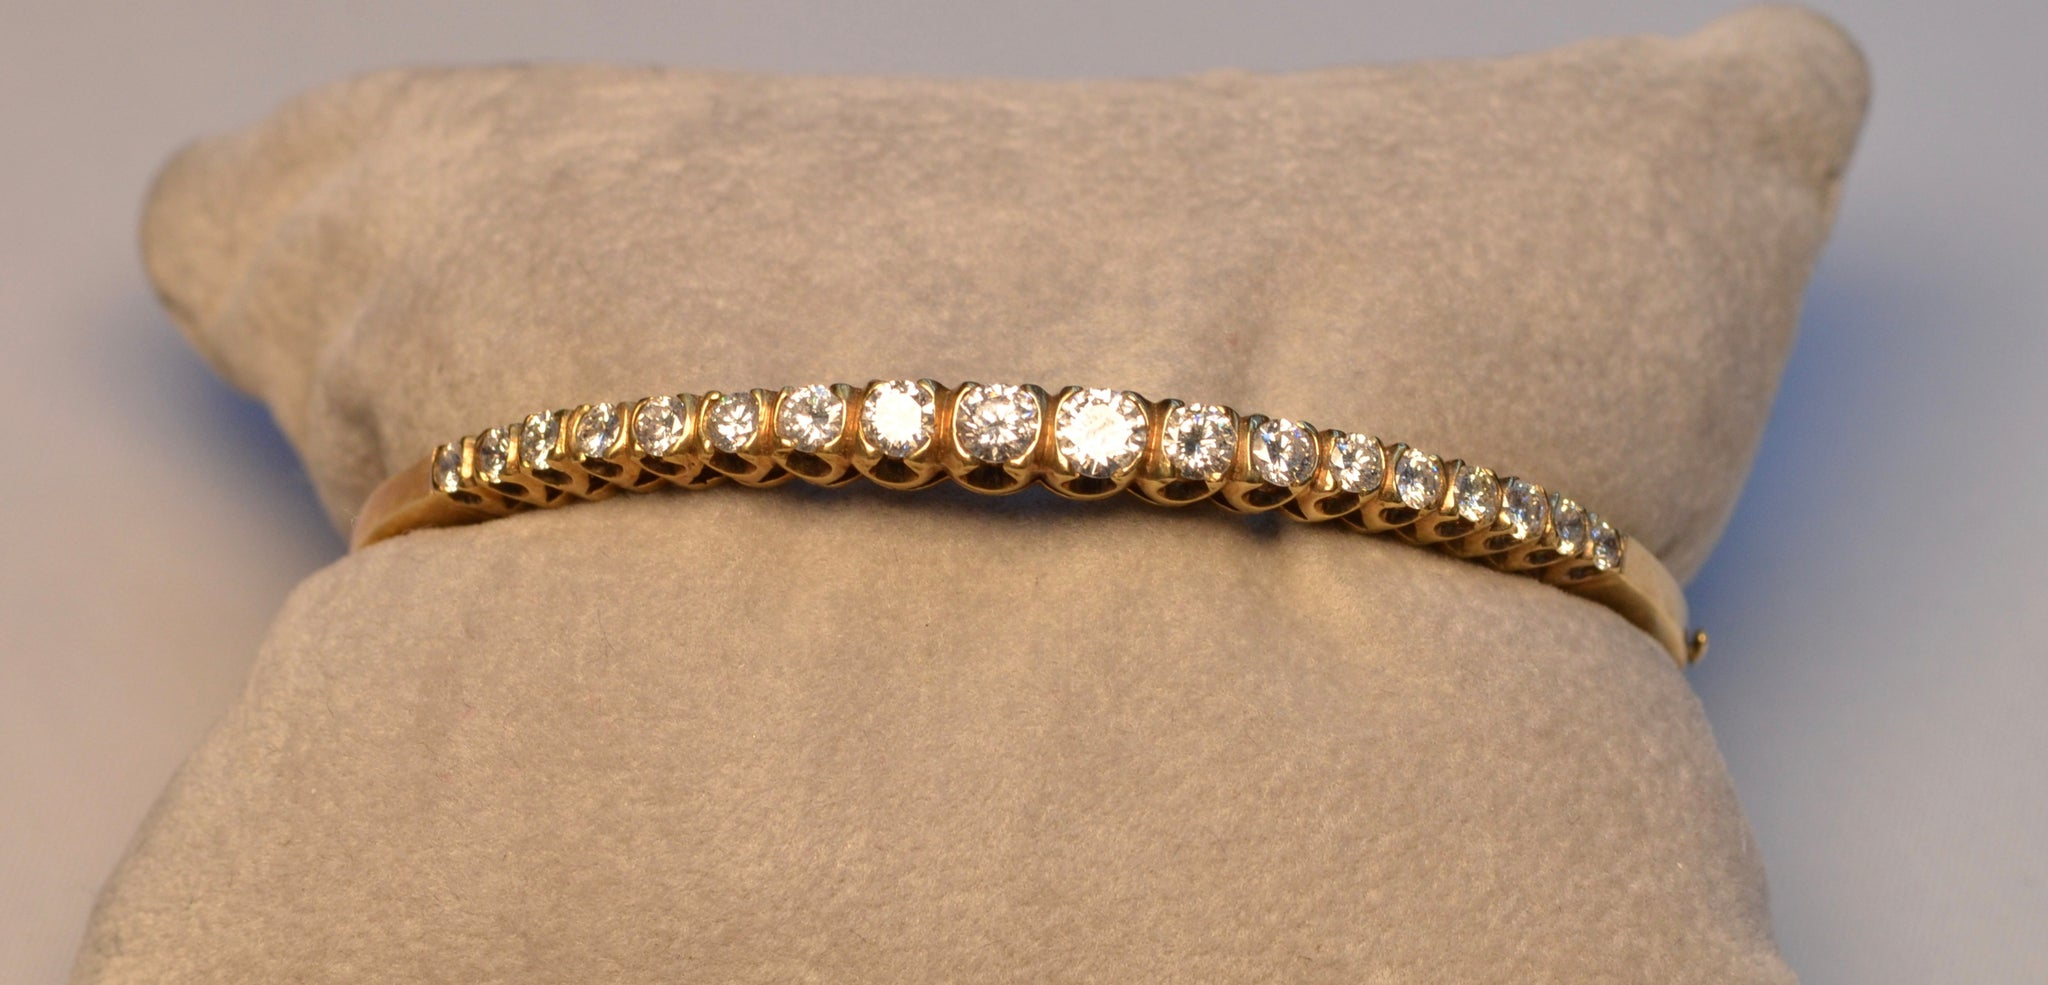 country diamond jewels mary club product bangle wodward bangles yellow gold bracelet